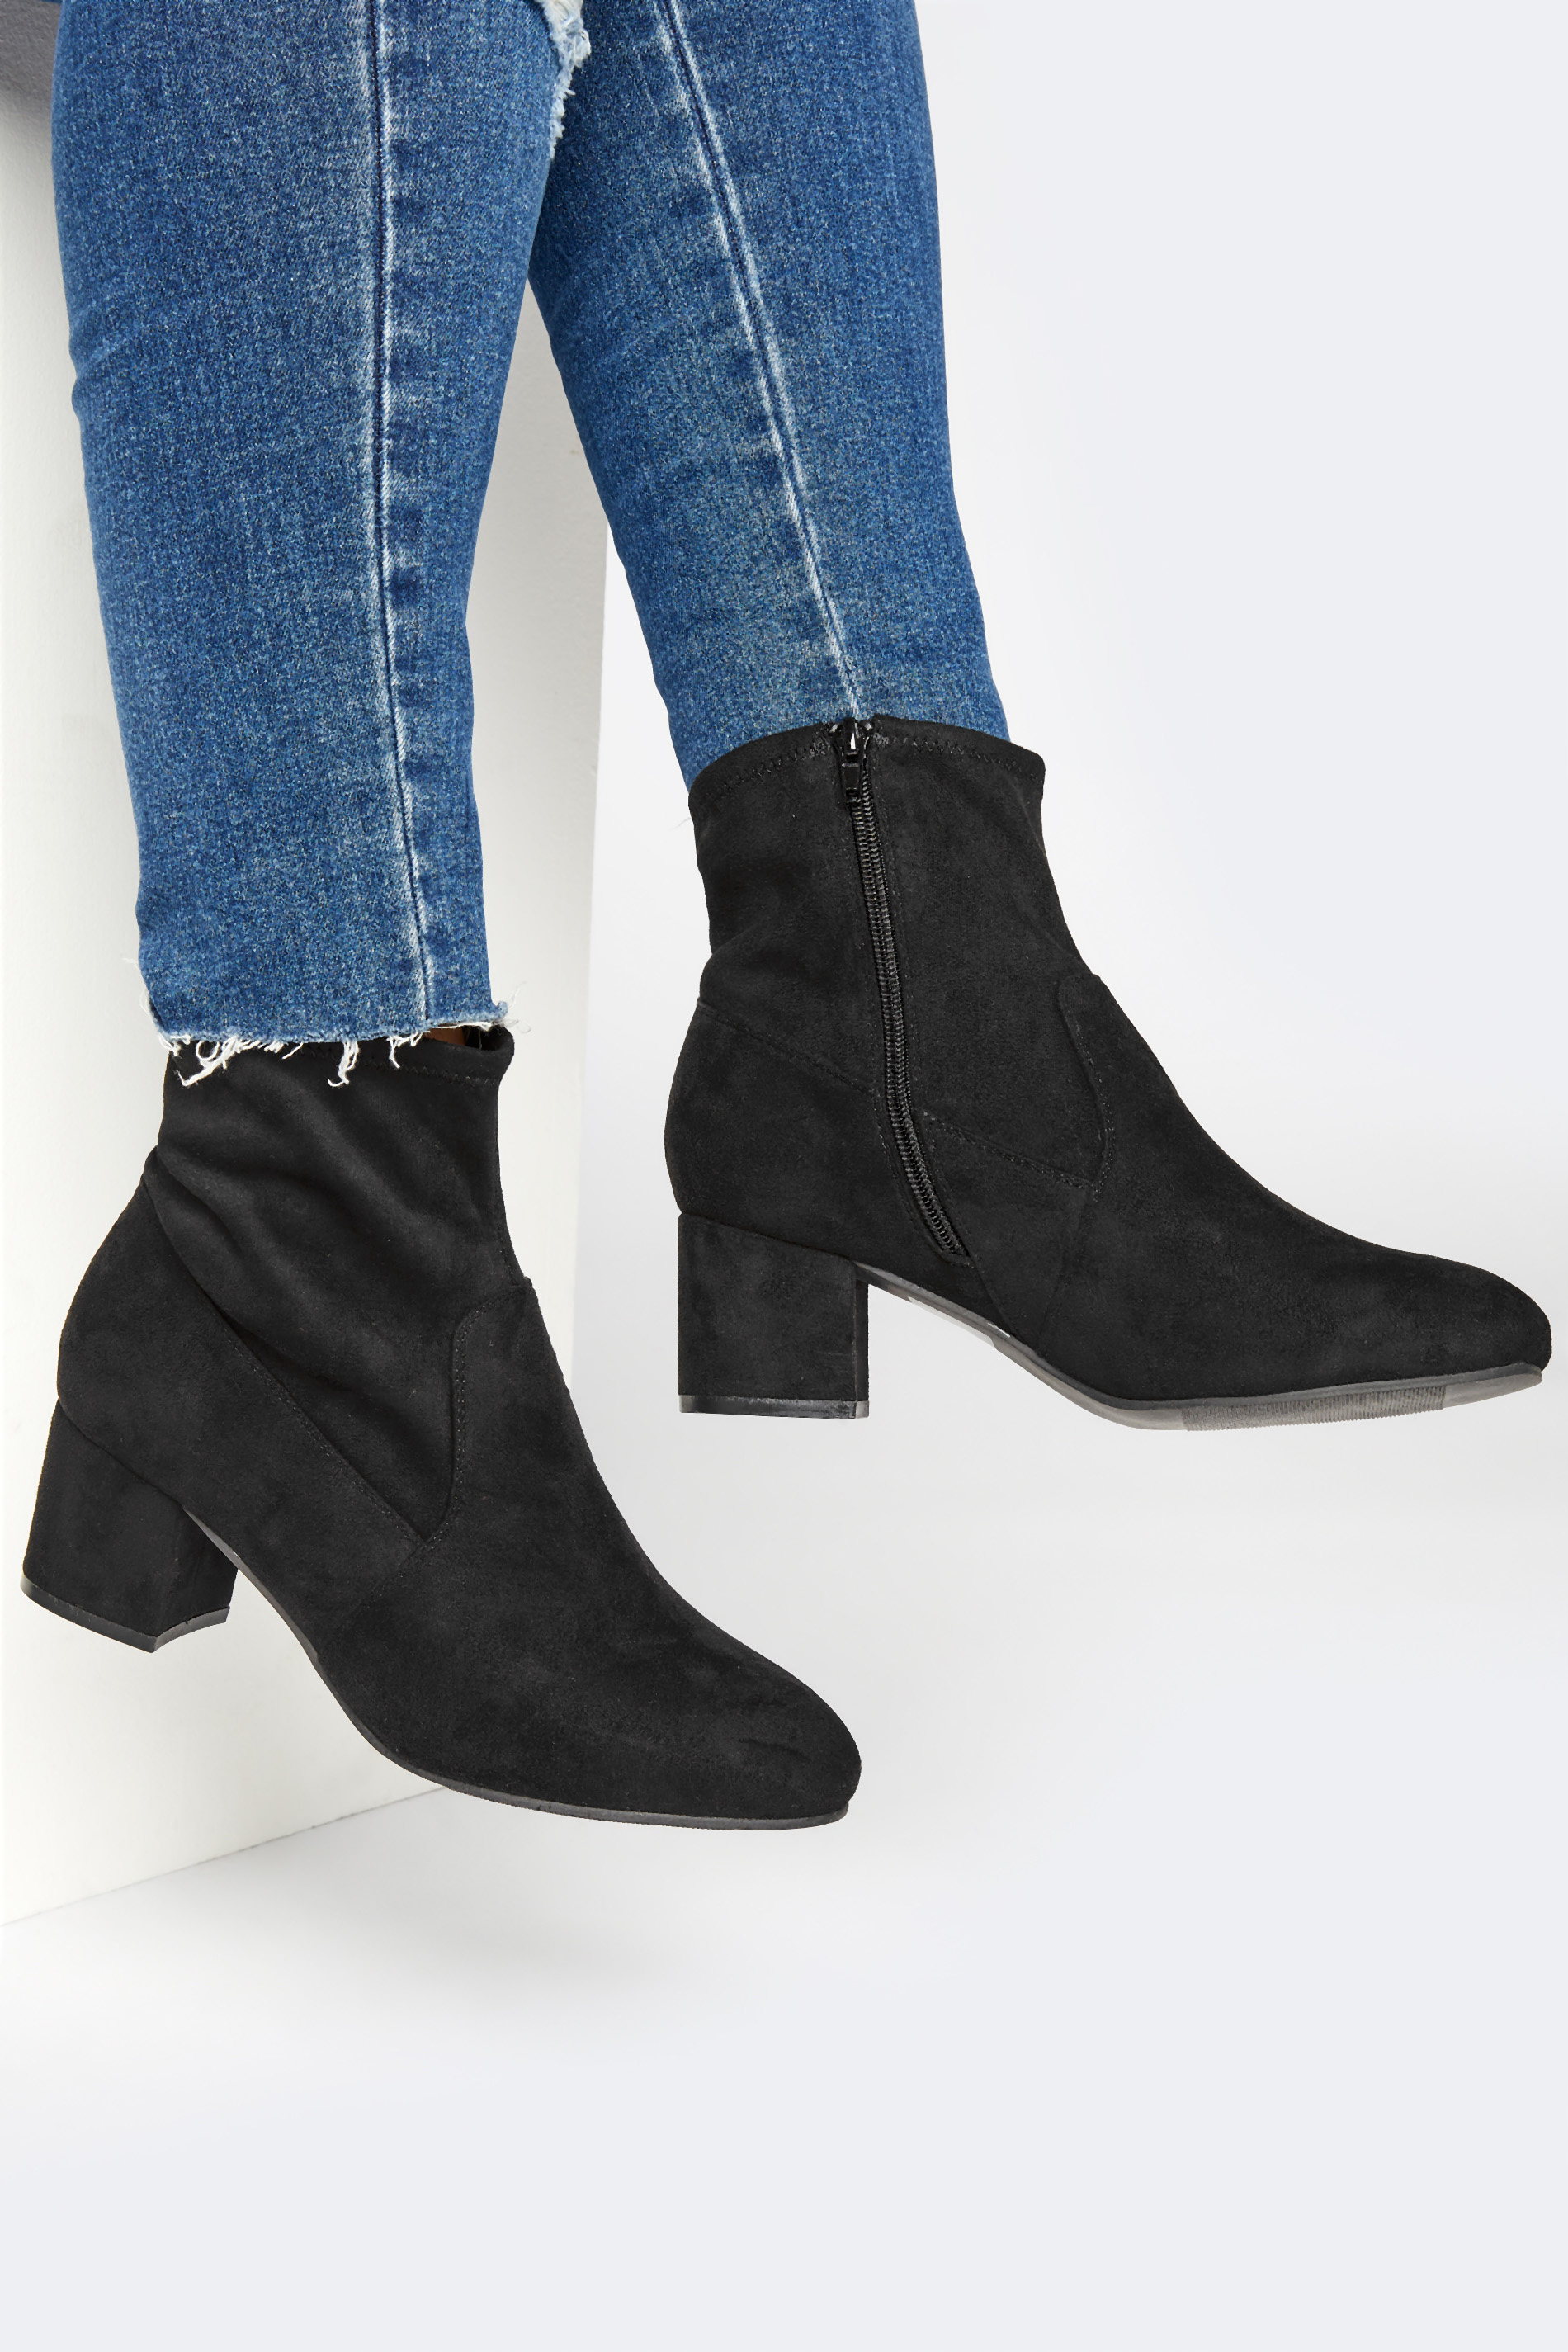 Black Faux Suede Stretch Block Heeled Boots In Extra Wide Fit_M.jpg